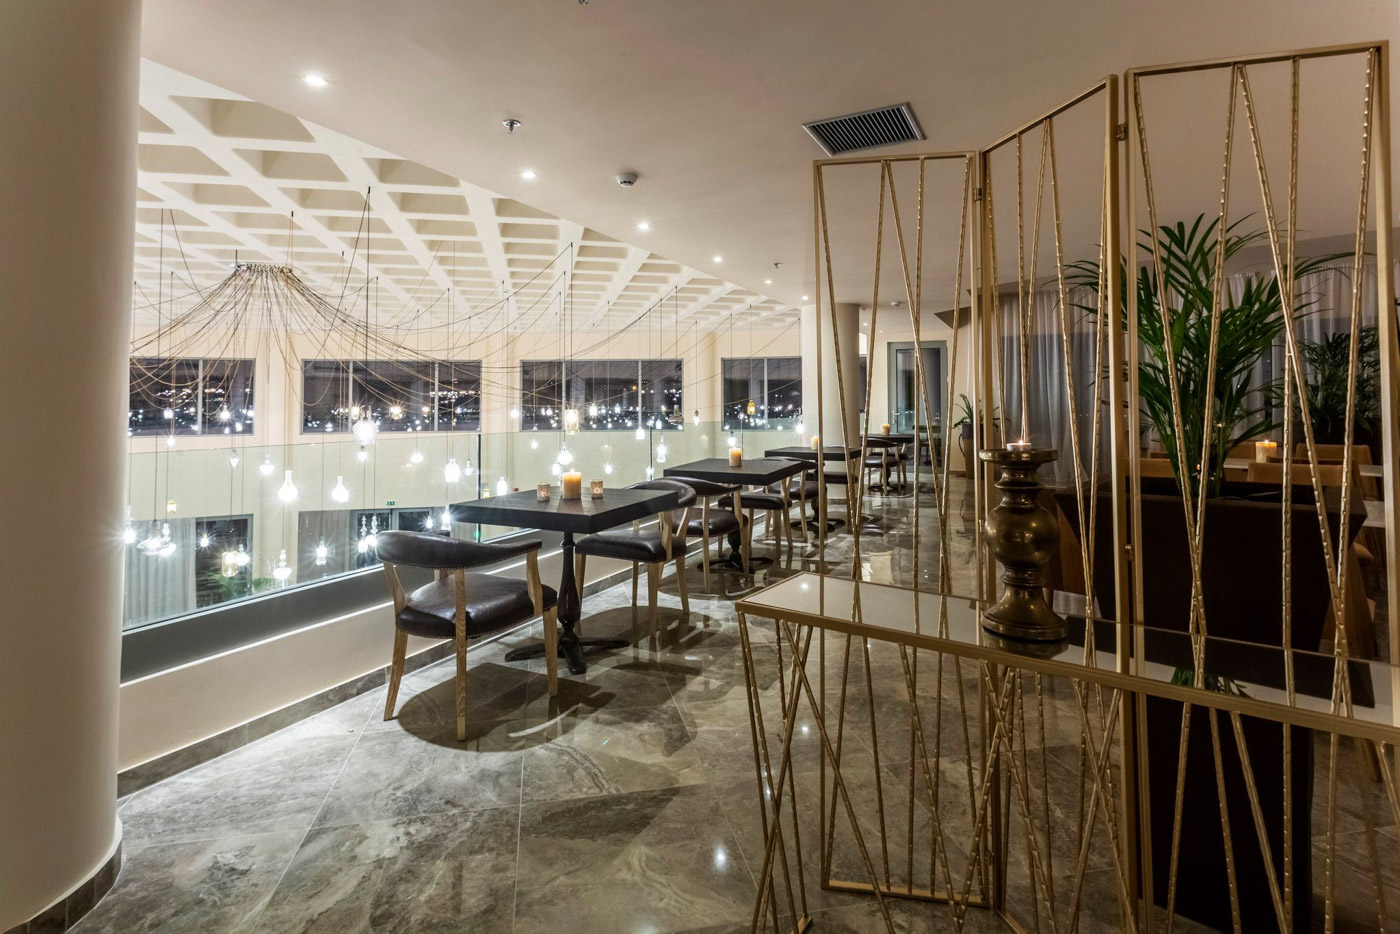 Elysian luxury hotel and spa Kalamata inside bar